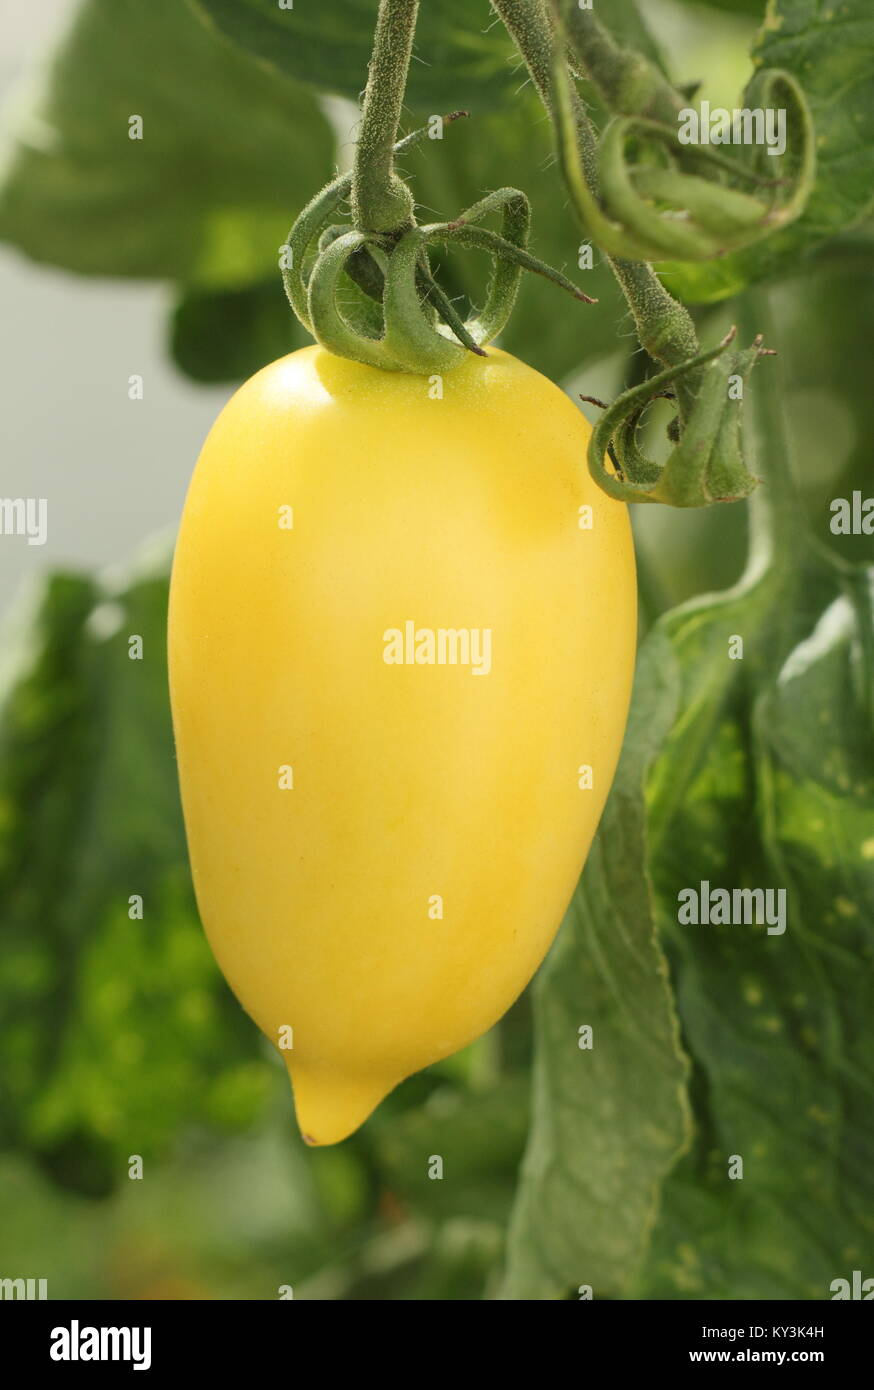 Solanum lycopersicum 'Cream Sausage' tomato plant variety growing on the vine in a greenhouse, England, - Stock Image